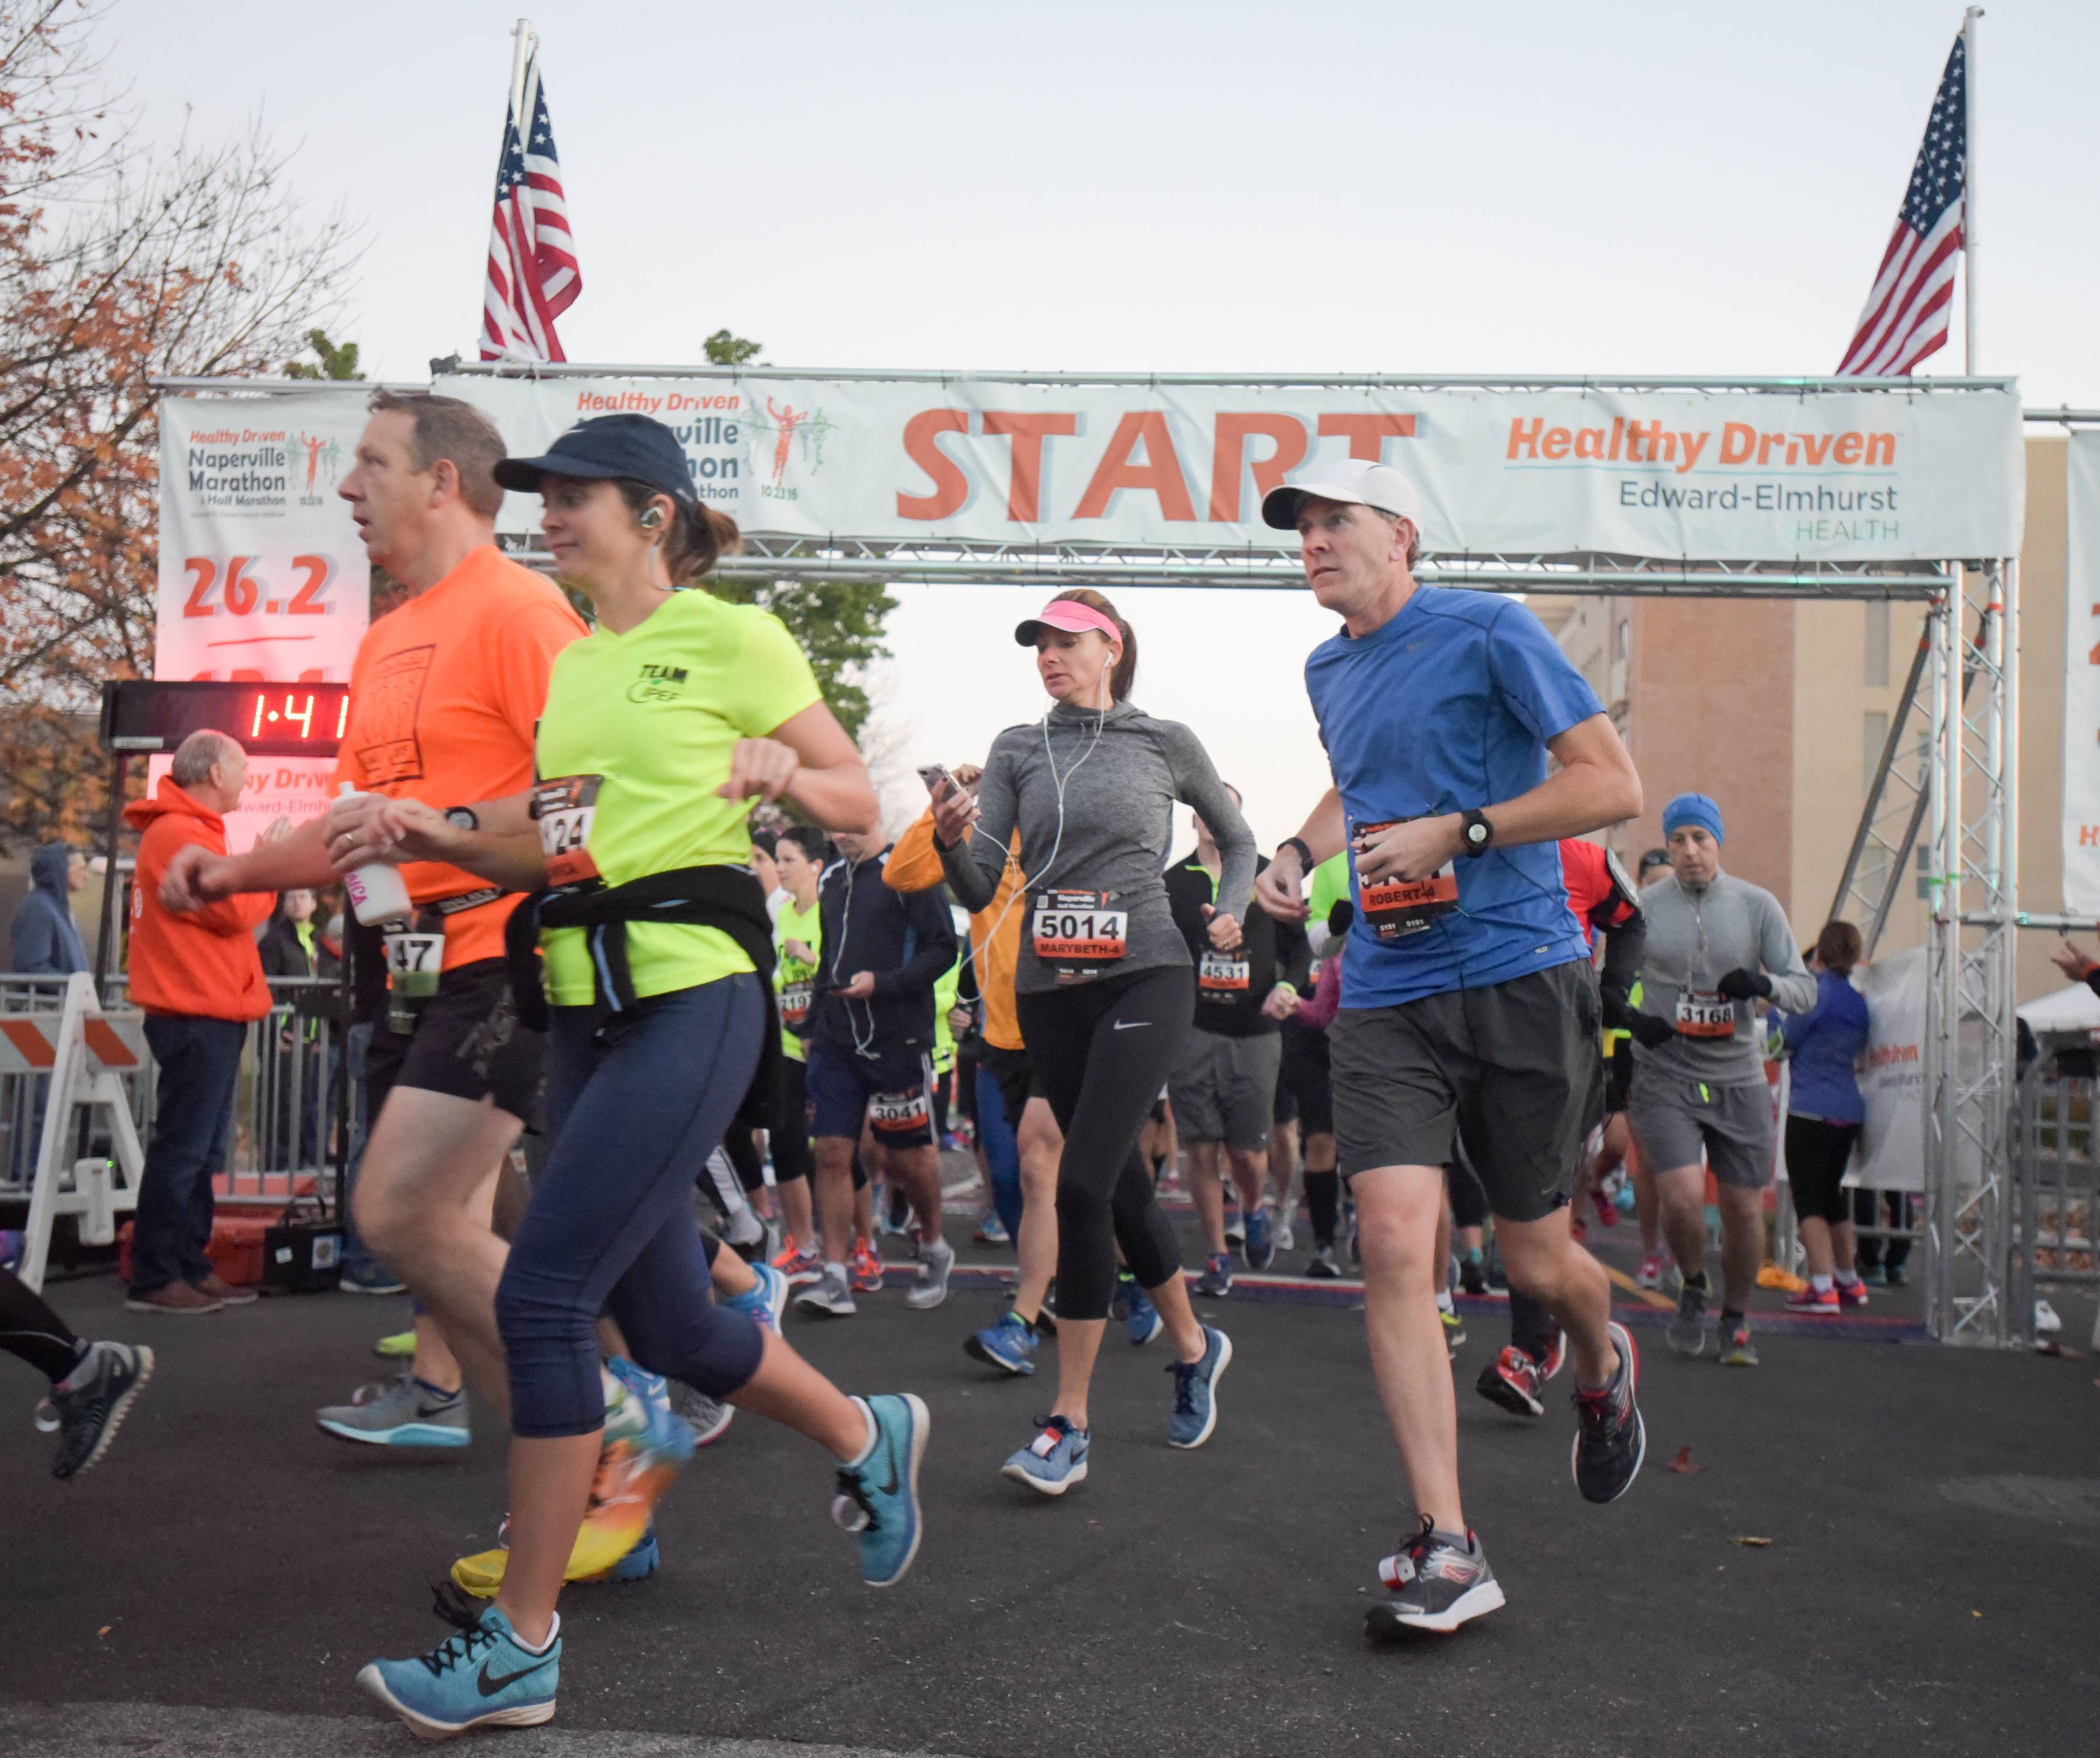 Organizers, city replace Naperville marathon with 5K